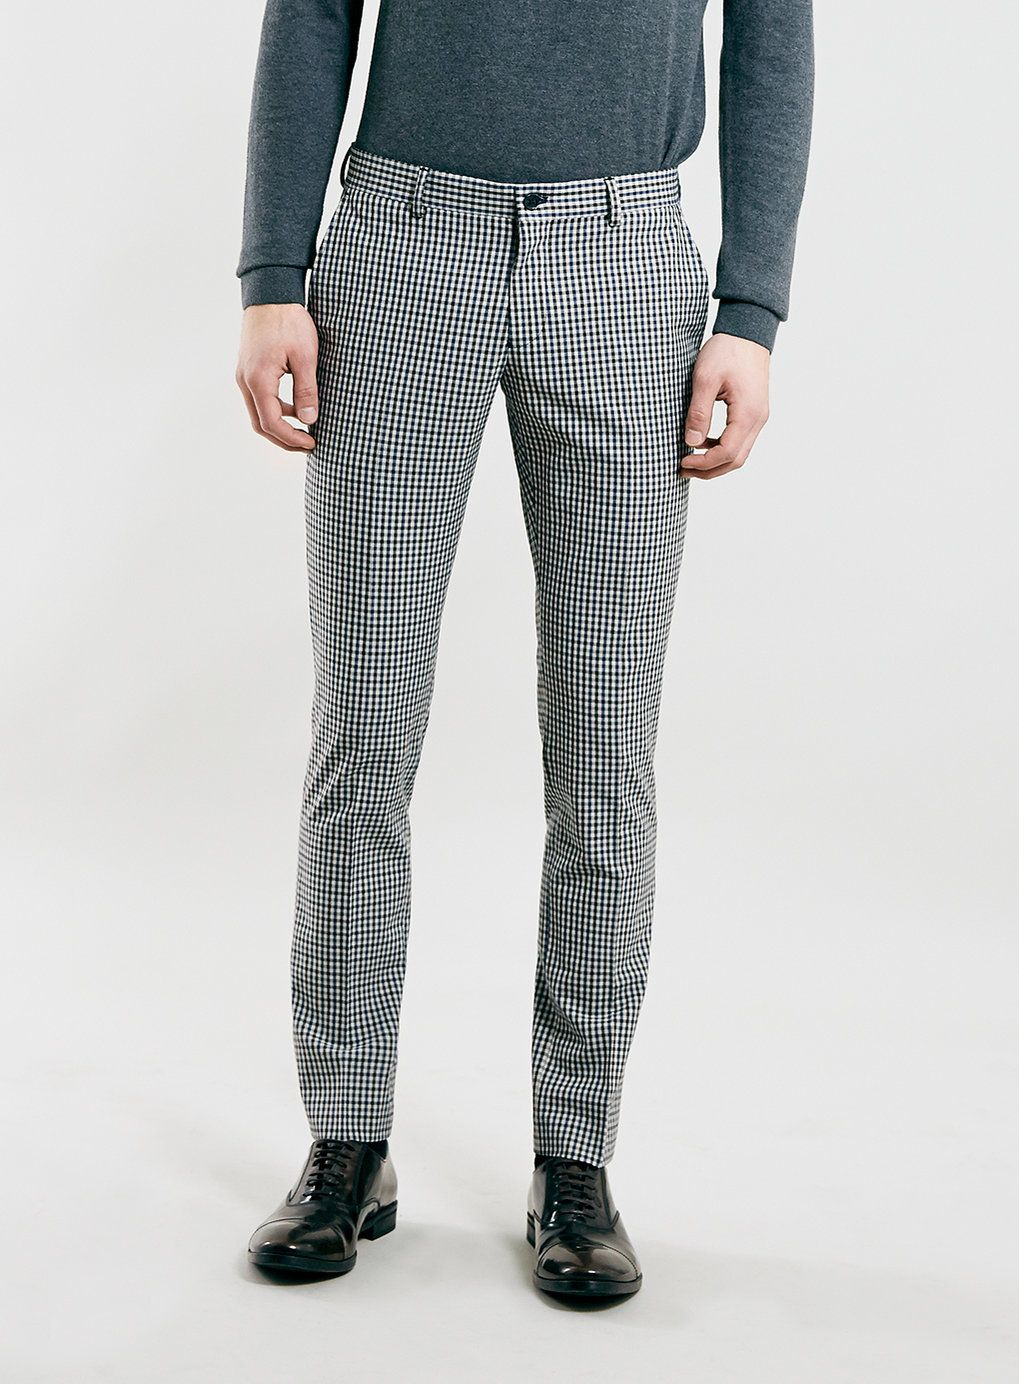 Selected Homme Grey Skinny Fit Check Suit Trousers Check Suit Topman Slim Fit Trousers [ 1384 x 1019 Pixel ]